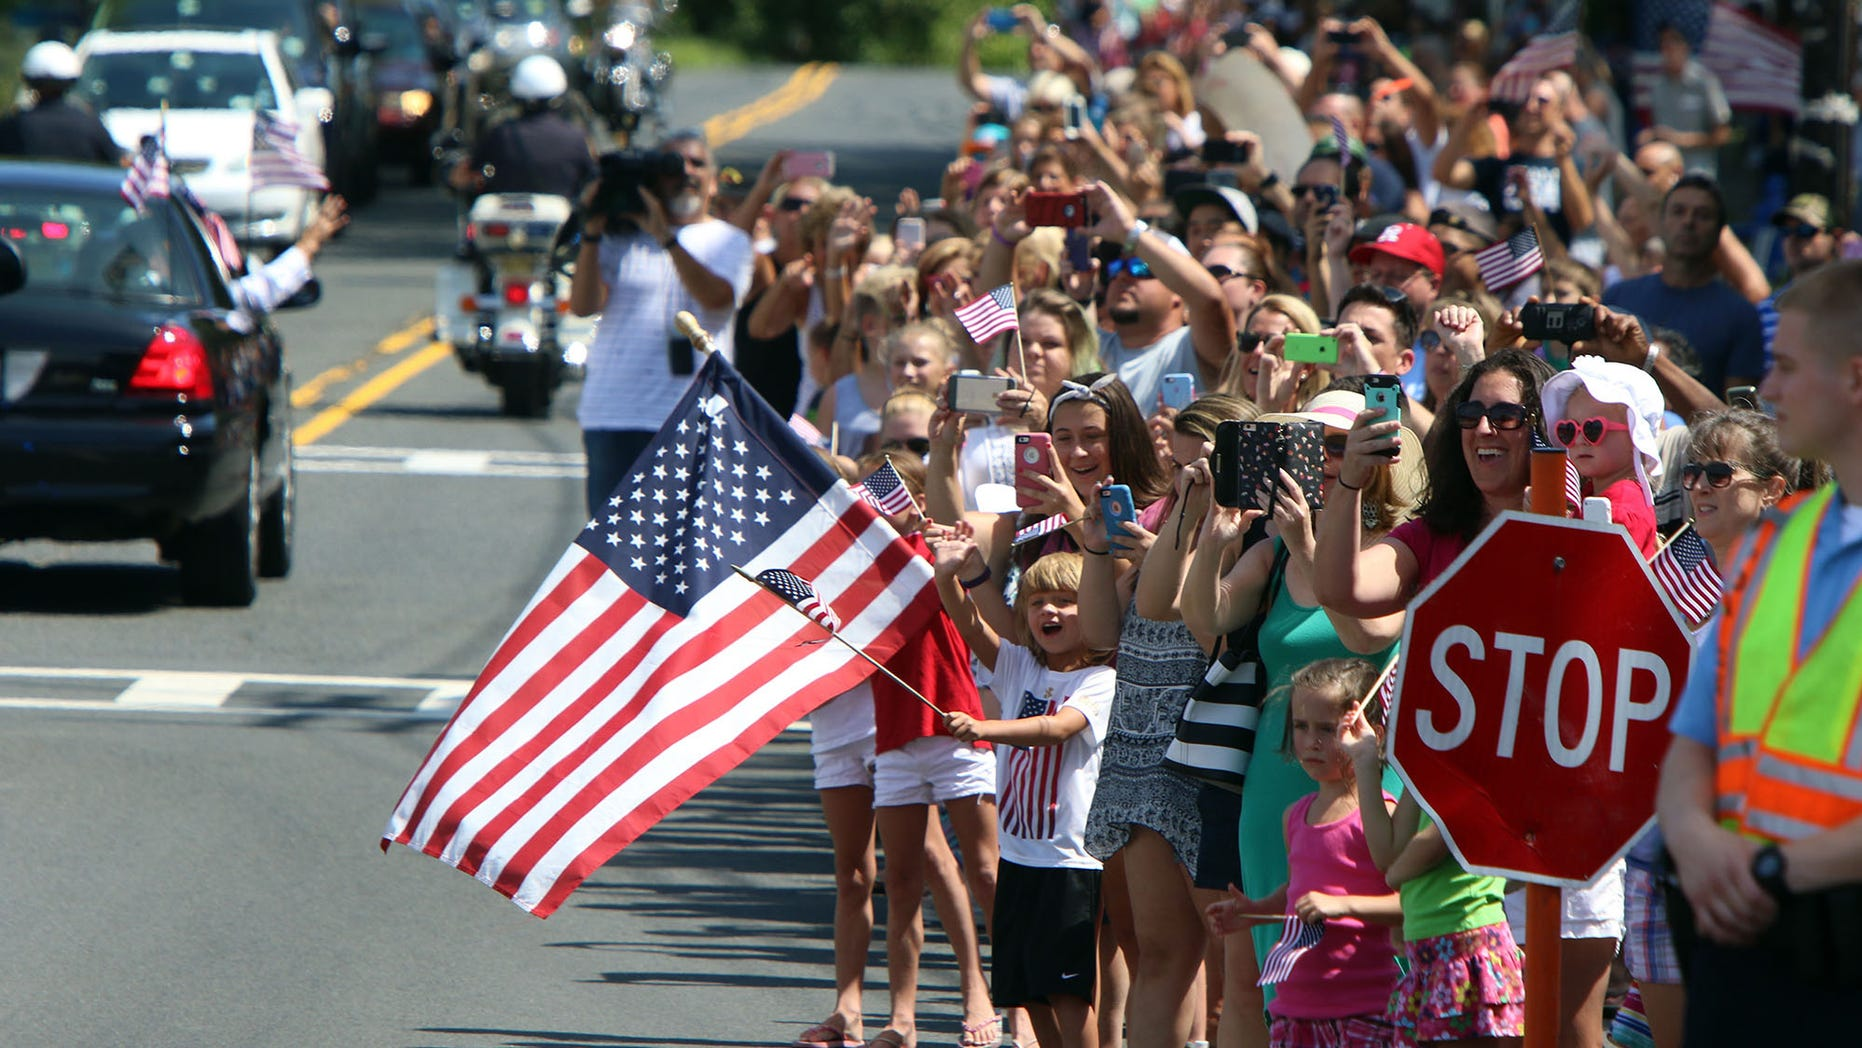 People wave and hold flags during a parade for Olympic gymnast Laurie Hernandez on Saturday, Aug. 27, 2016, in Old Bridge, N.J. (Magdeline Bassett/The Asbury Park Press via AP)